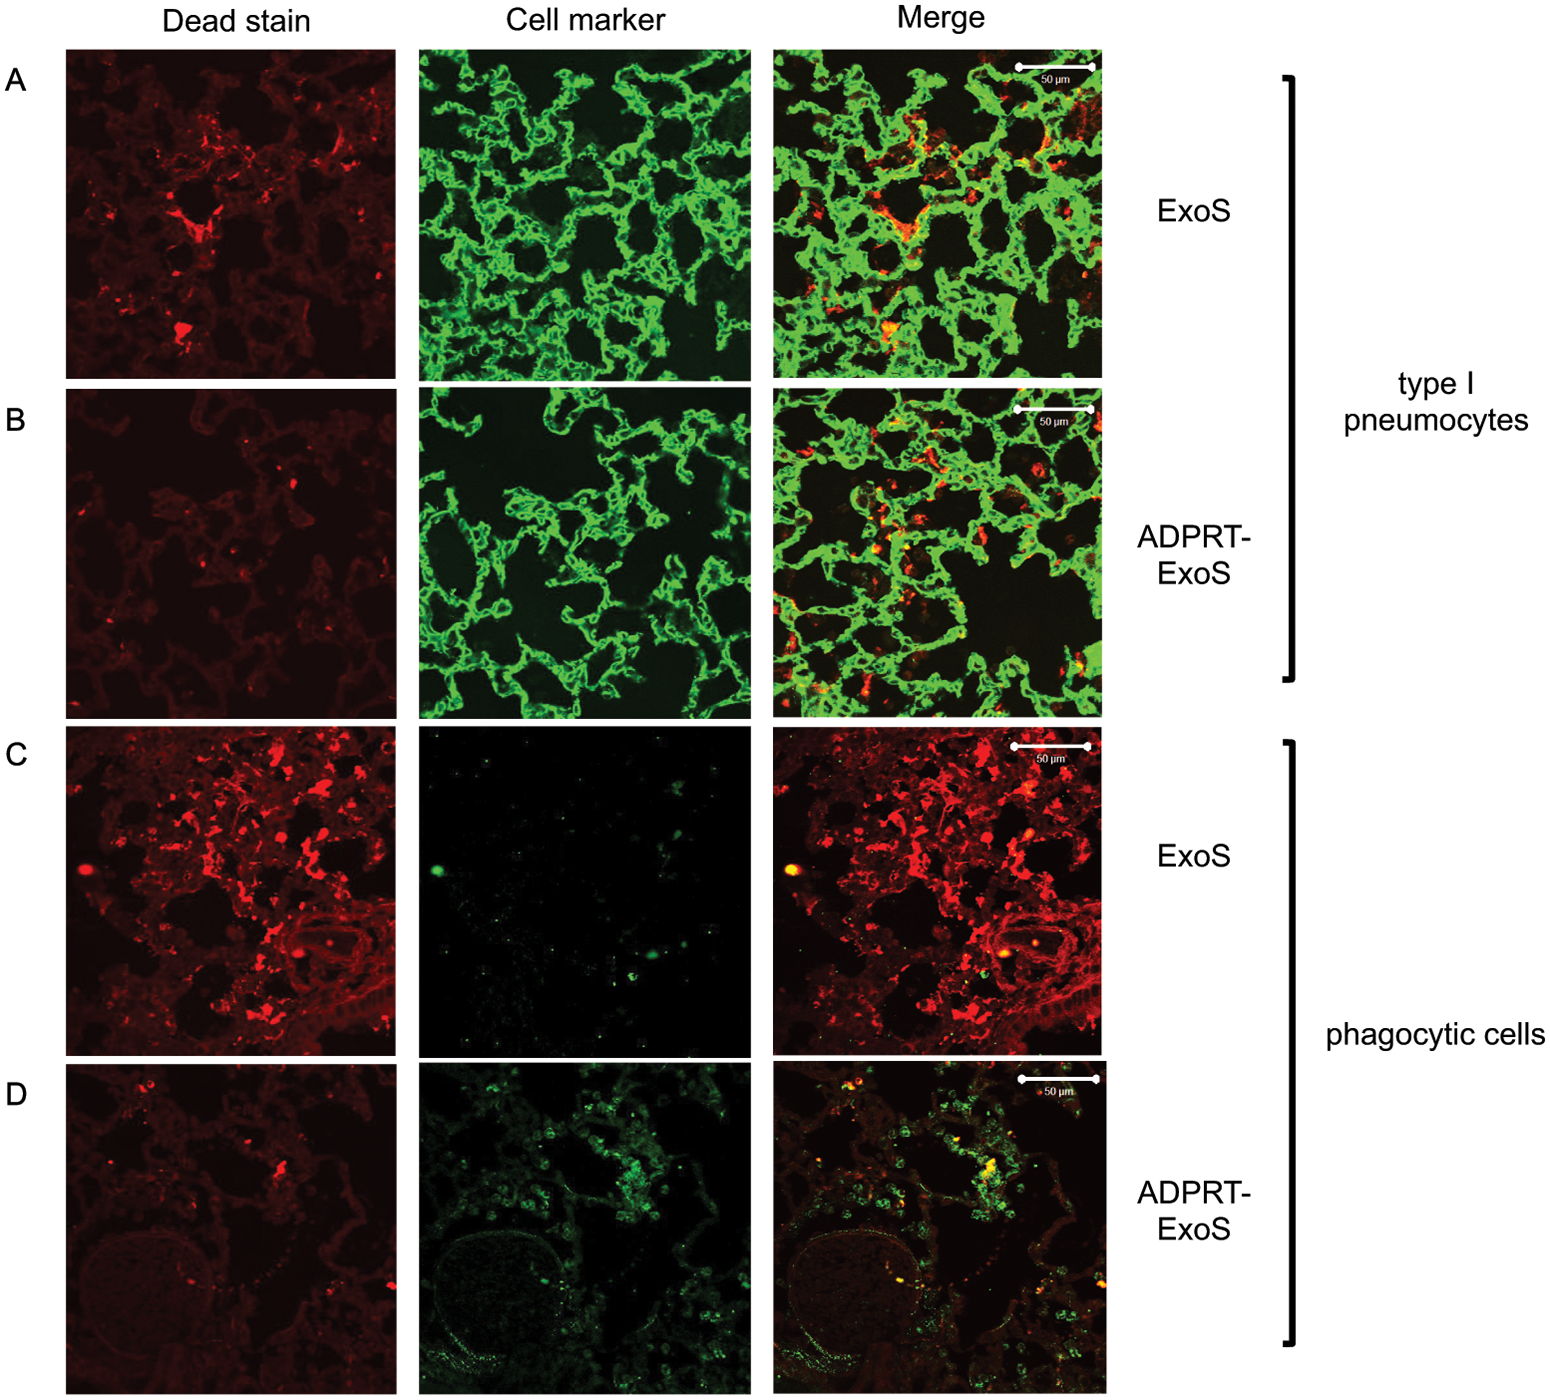 FOCI injected with ExoS contain many dead type I pneumocytes, whereas FOCI injected with ADPRT-deficient ExoS contain only a few dead phagocytic cells.